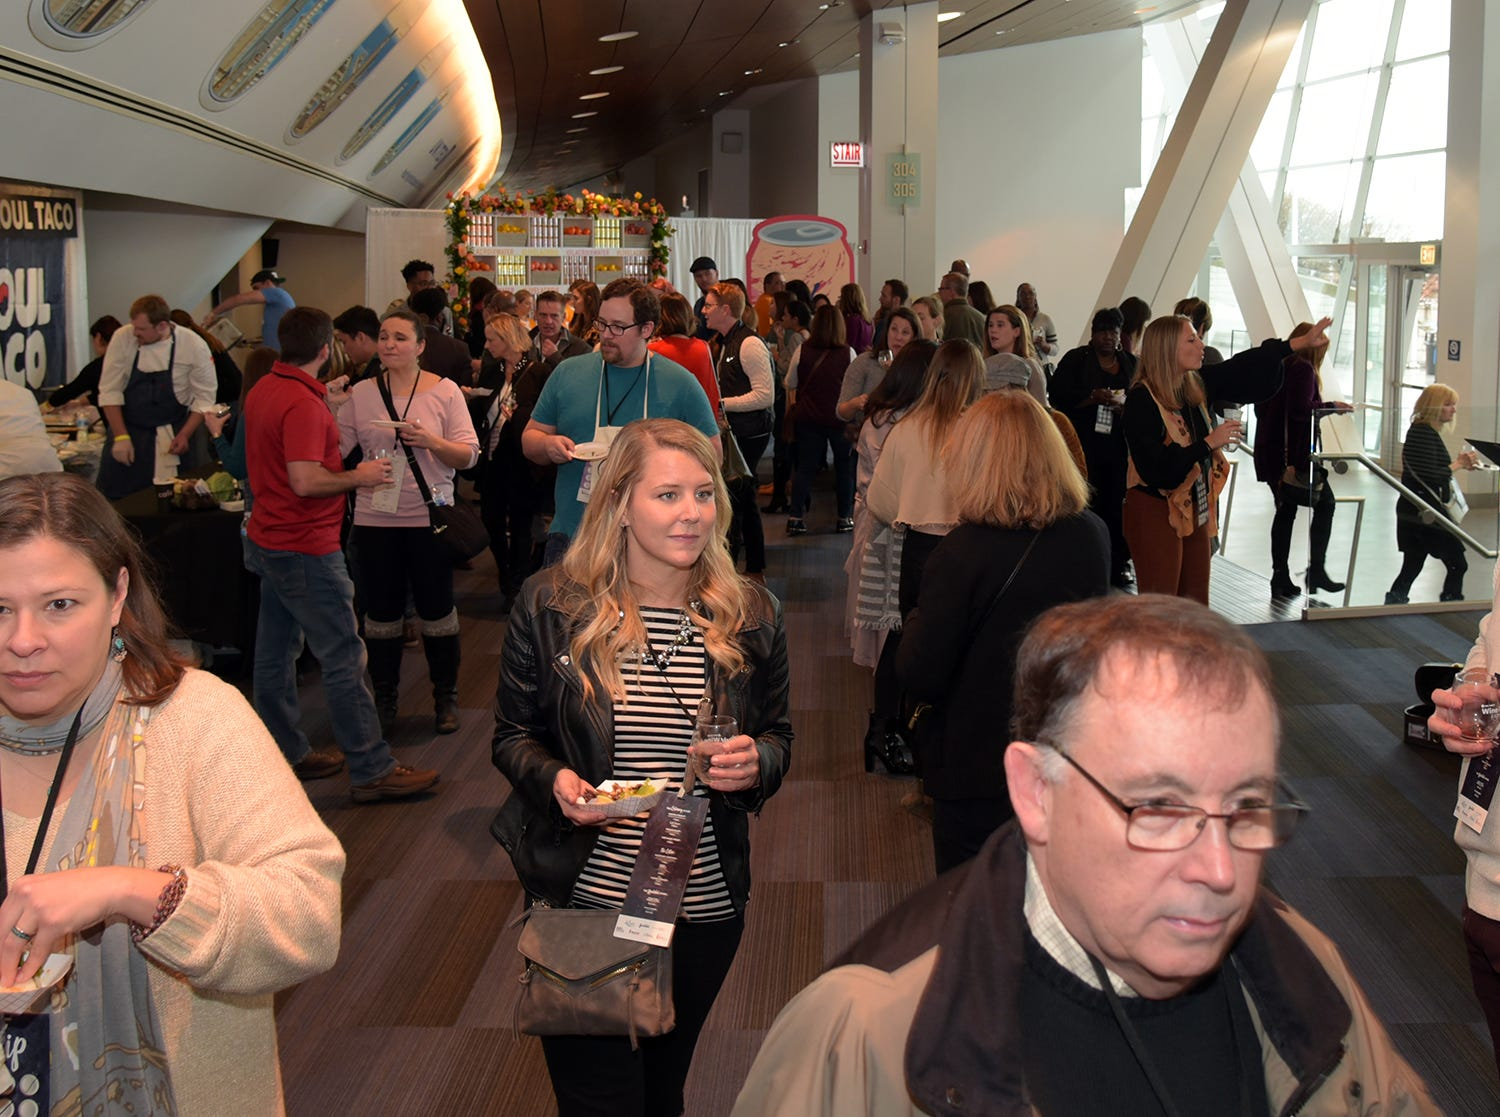 More than 1,000 attended the event at Soldier Field.